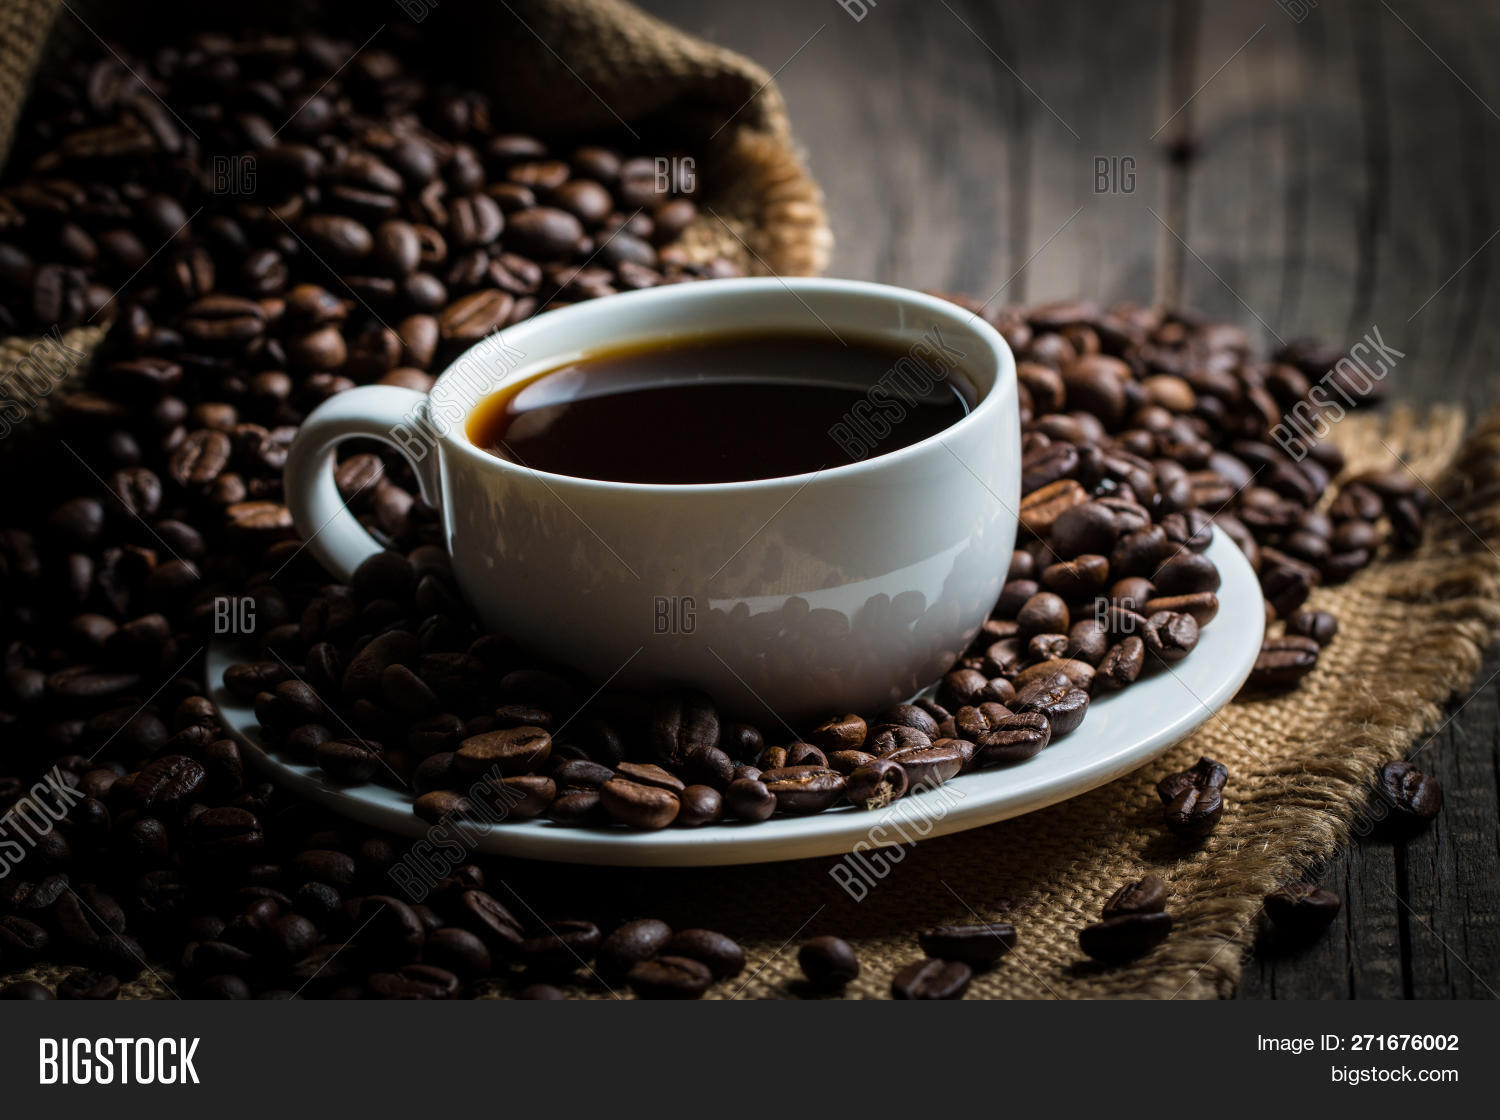 aroma,aromatic,beans,beverage,black,break,breakfast,brown,cafe,caffeine,chocolate,cinnamon,coffee,cup,dark,drink,energy,espresso,flavor,food,fresh,gastronomy,grind,hot,kitchen,morning,relax,restaurant,roasted,rustic,spice,stainless,steam,steel,still,strong,table,taste,up,wake,wood